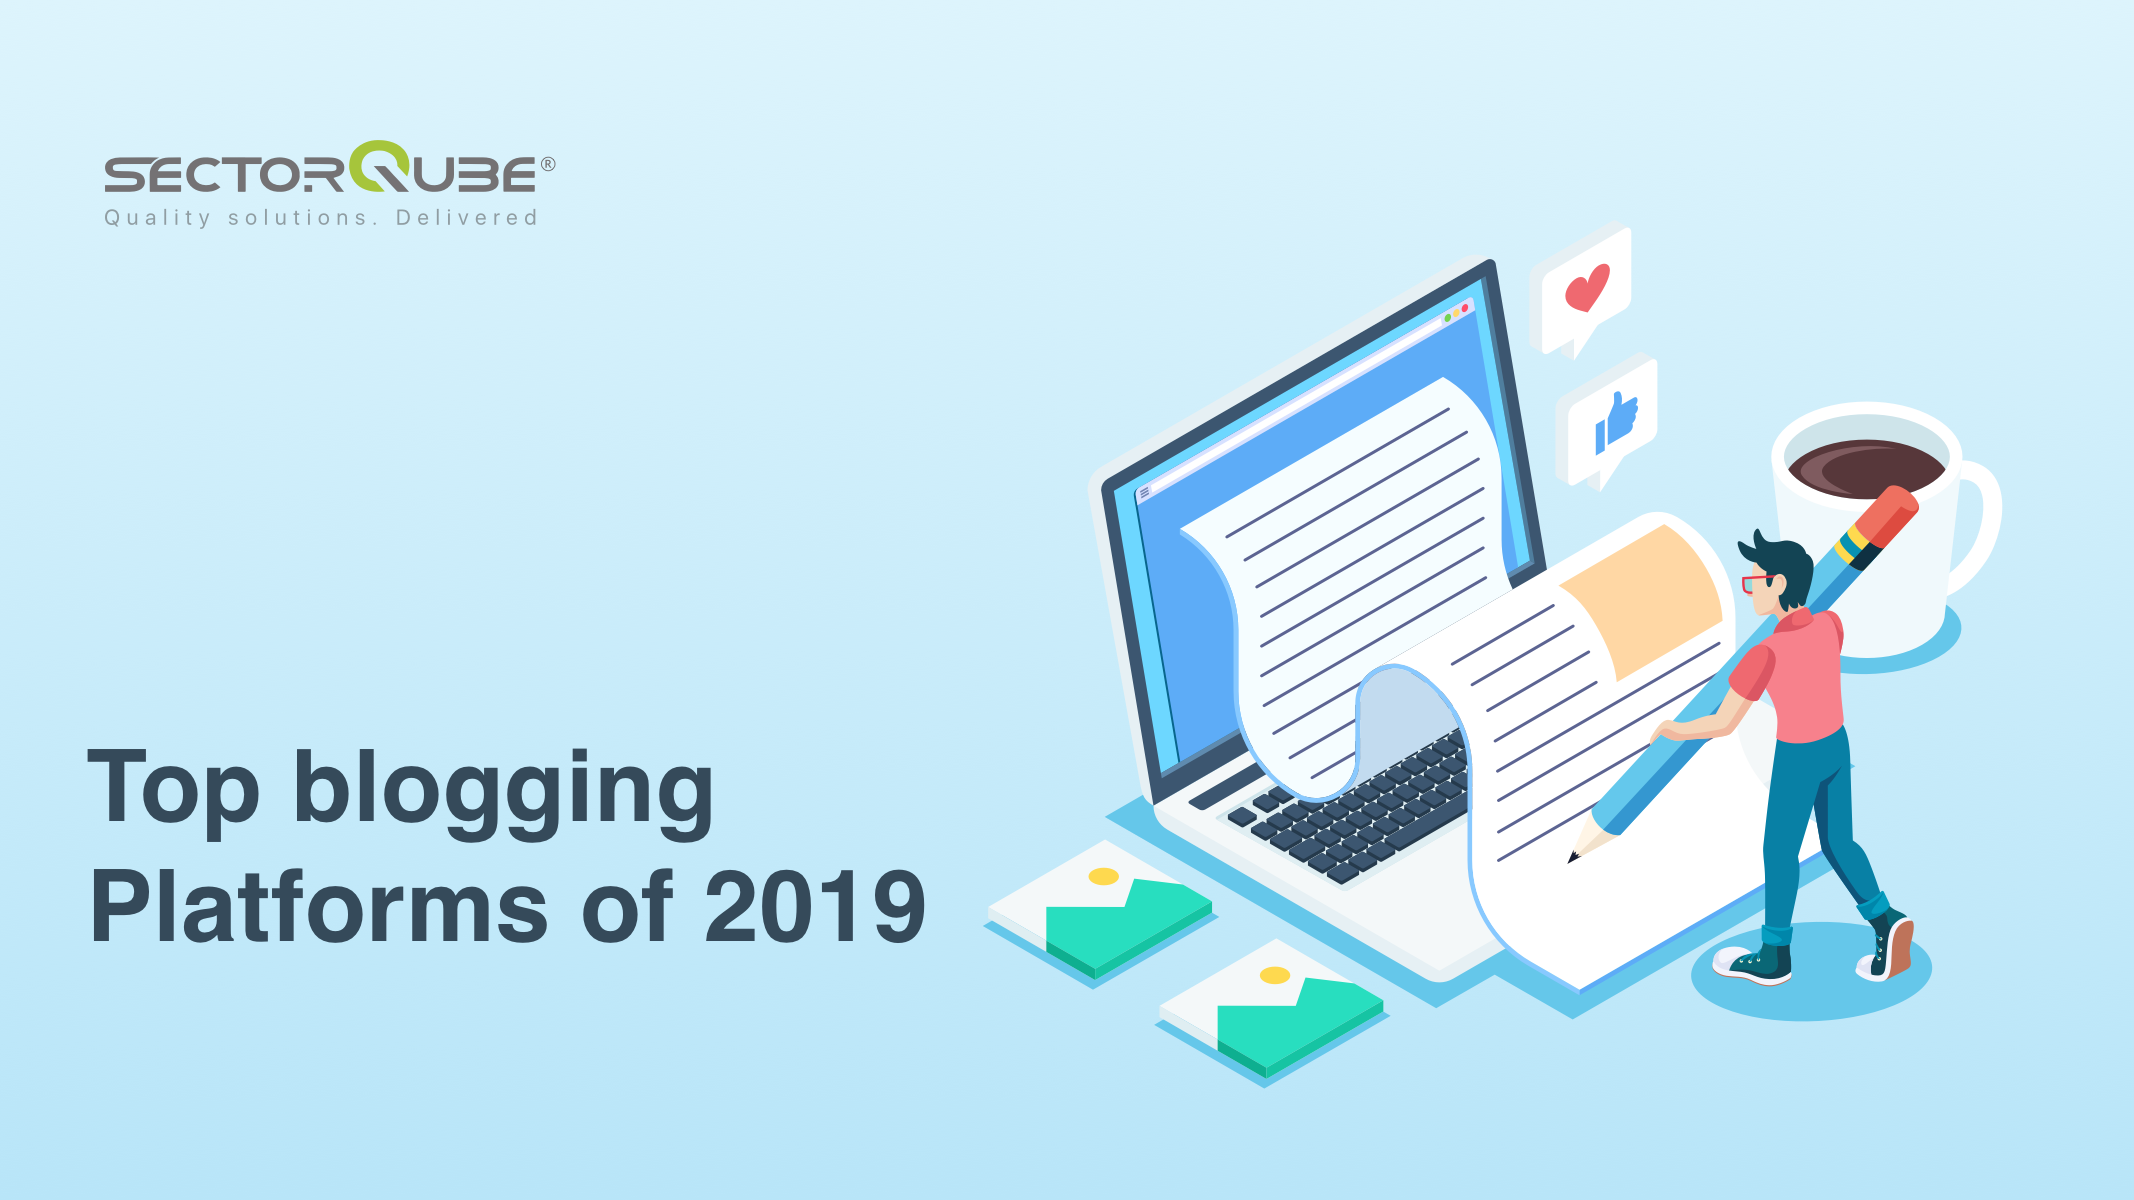 Blogging platforms of 2019